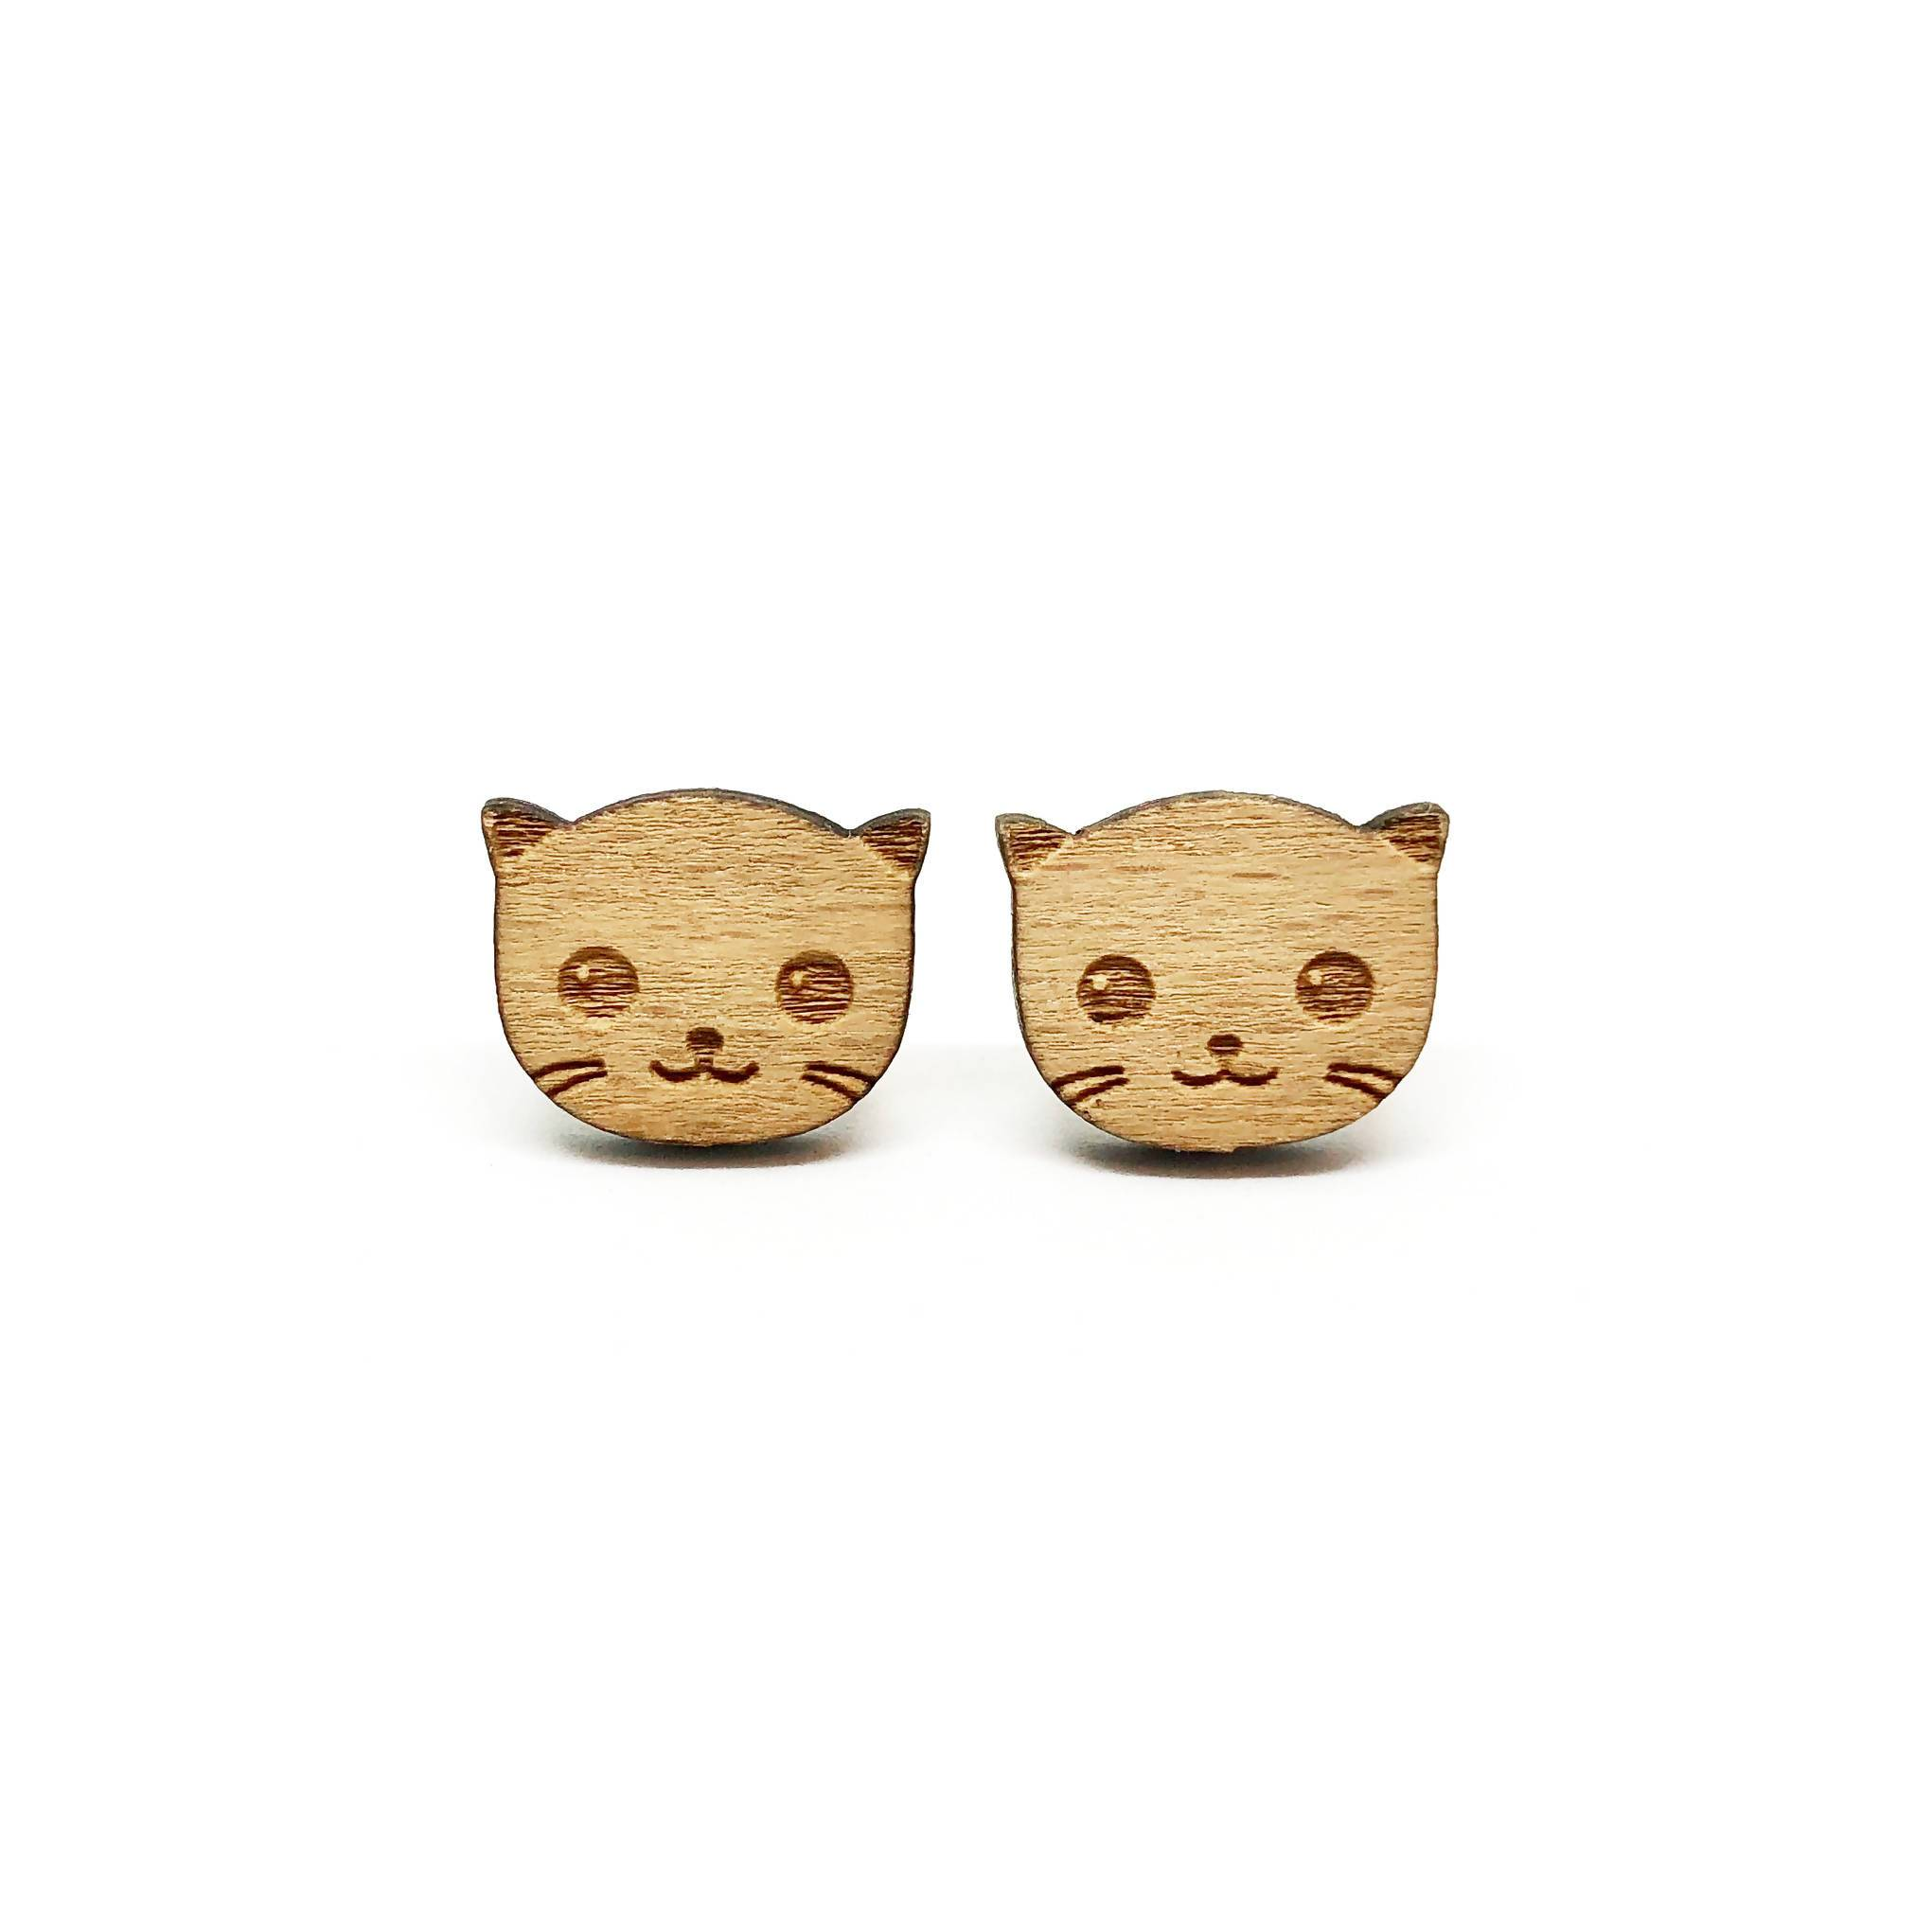 Kitty Cat Laser Cut Wood Earrings - Earring Studs - Paperdaise Accessories - Naiise